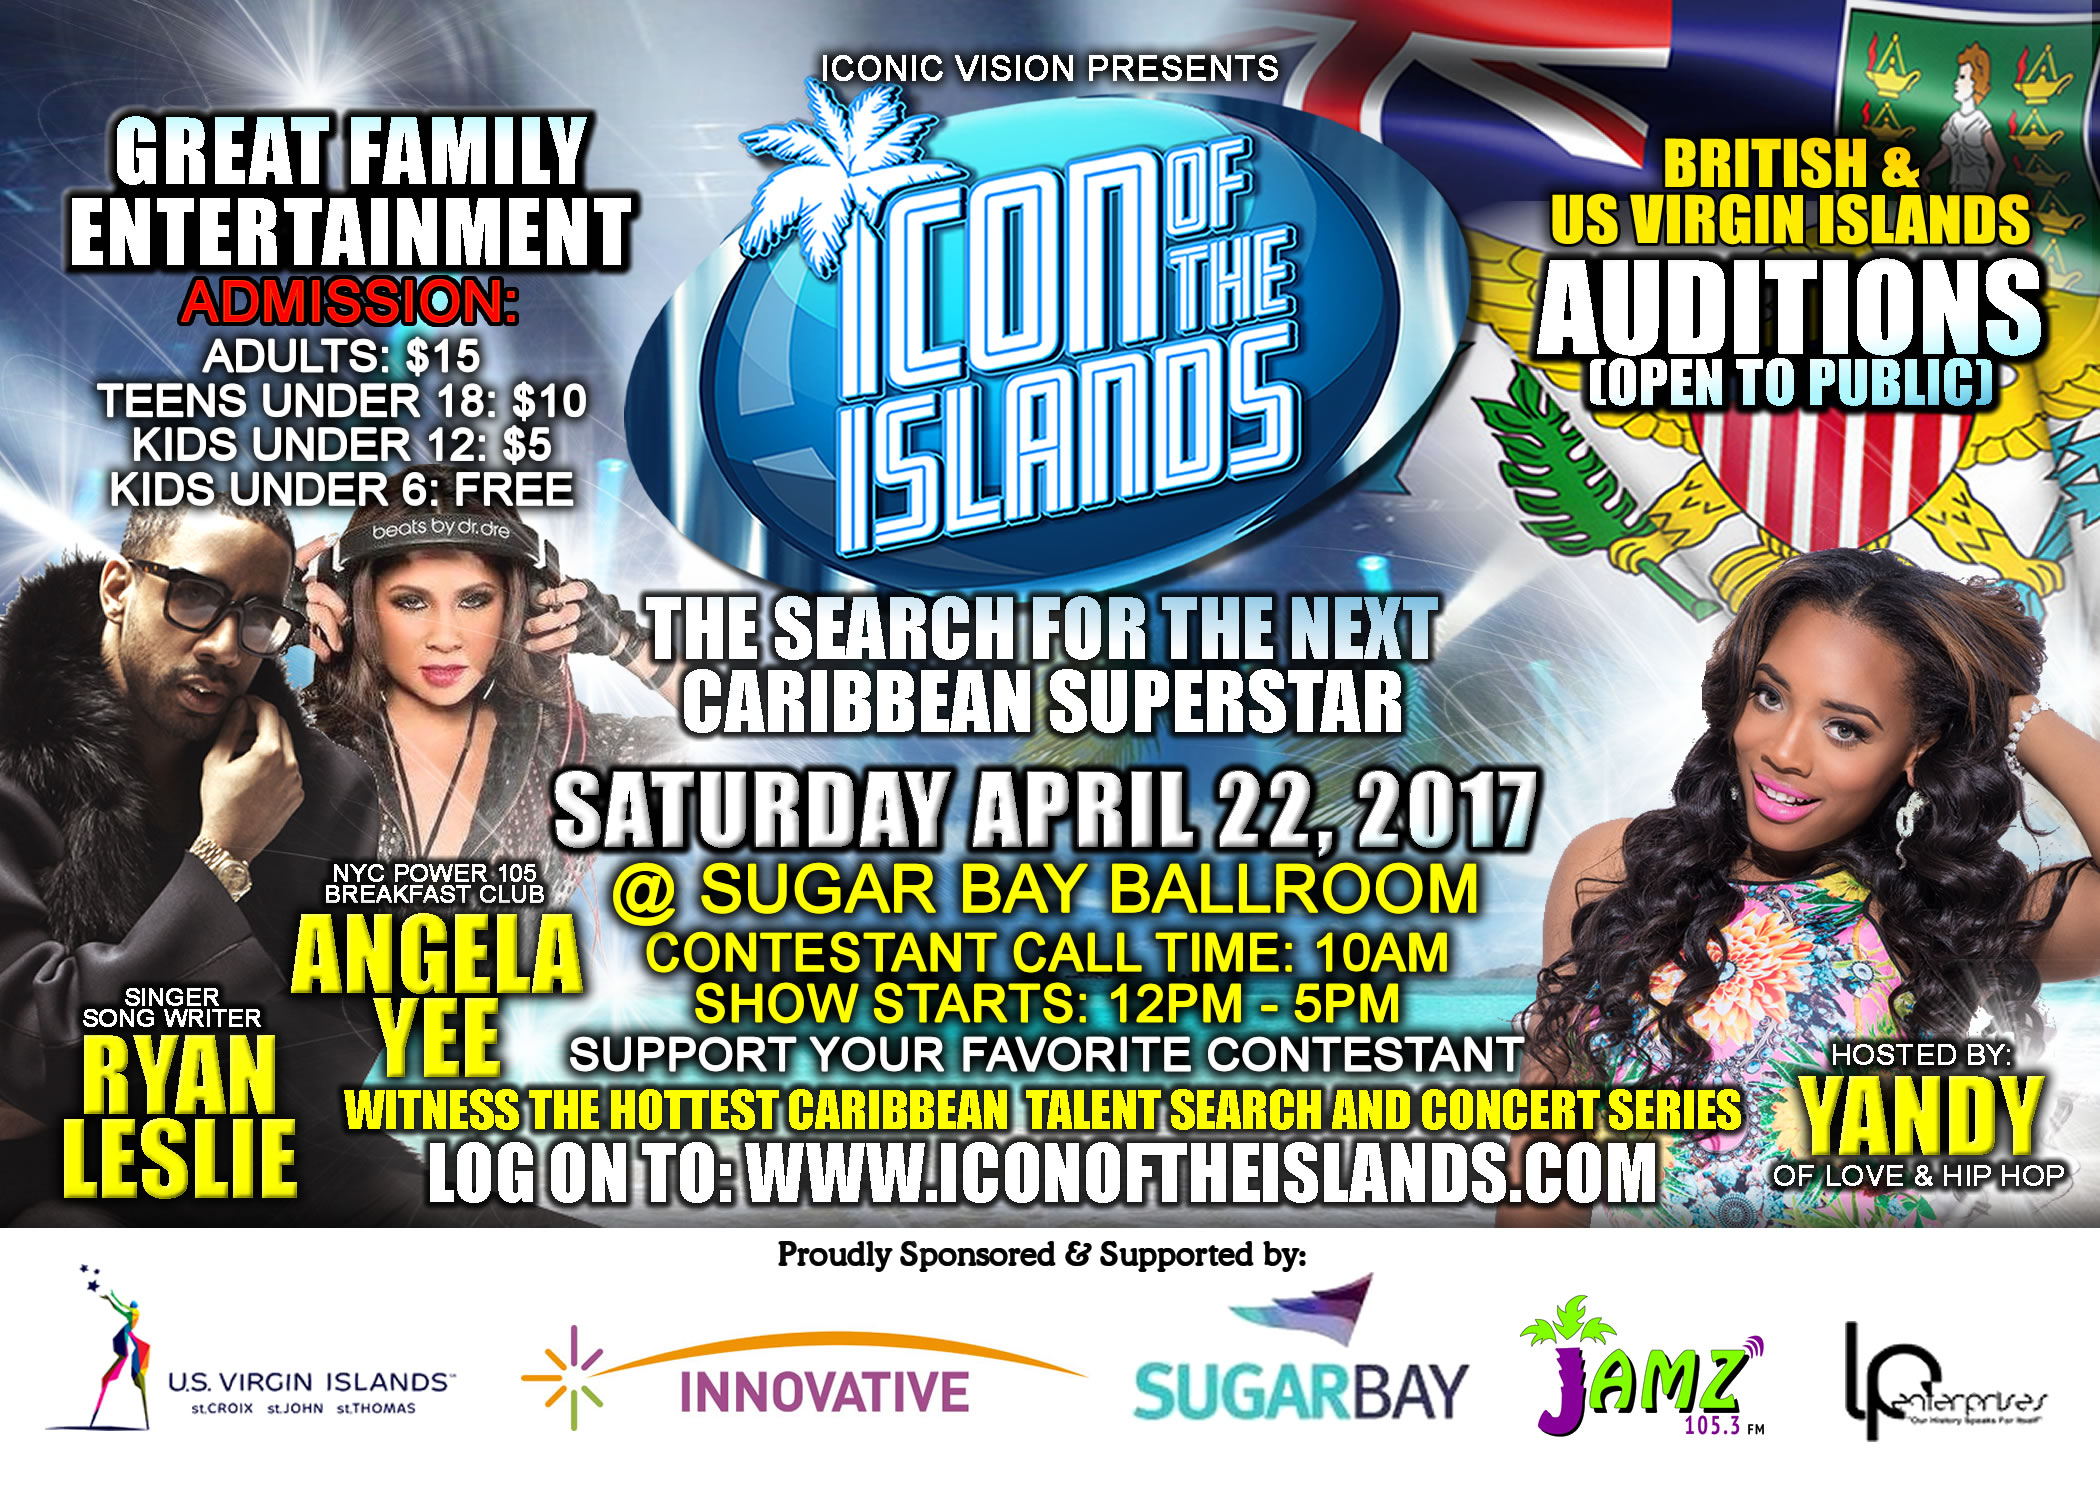 Icon of the Islands Auditions - Virgin Islands Season 2